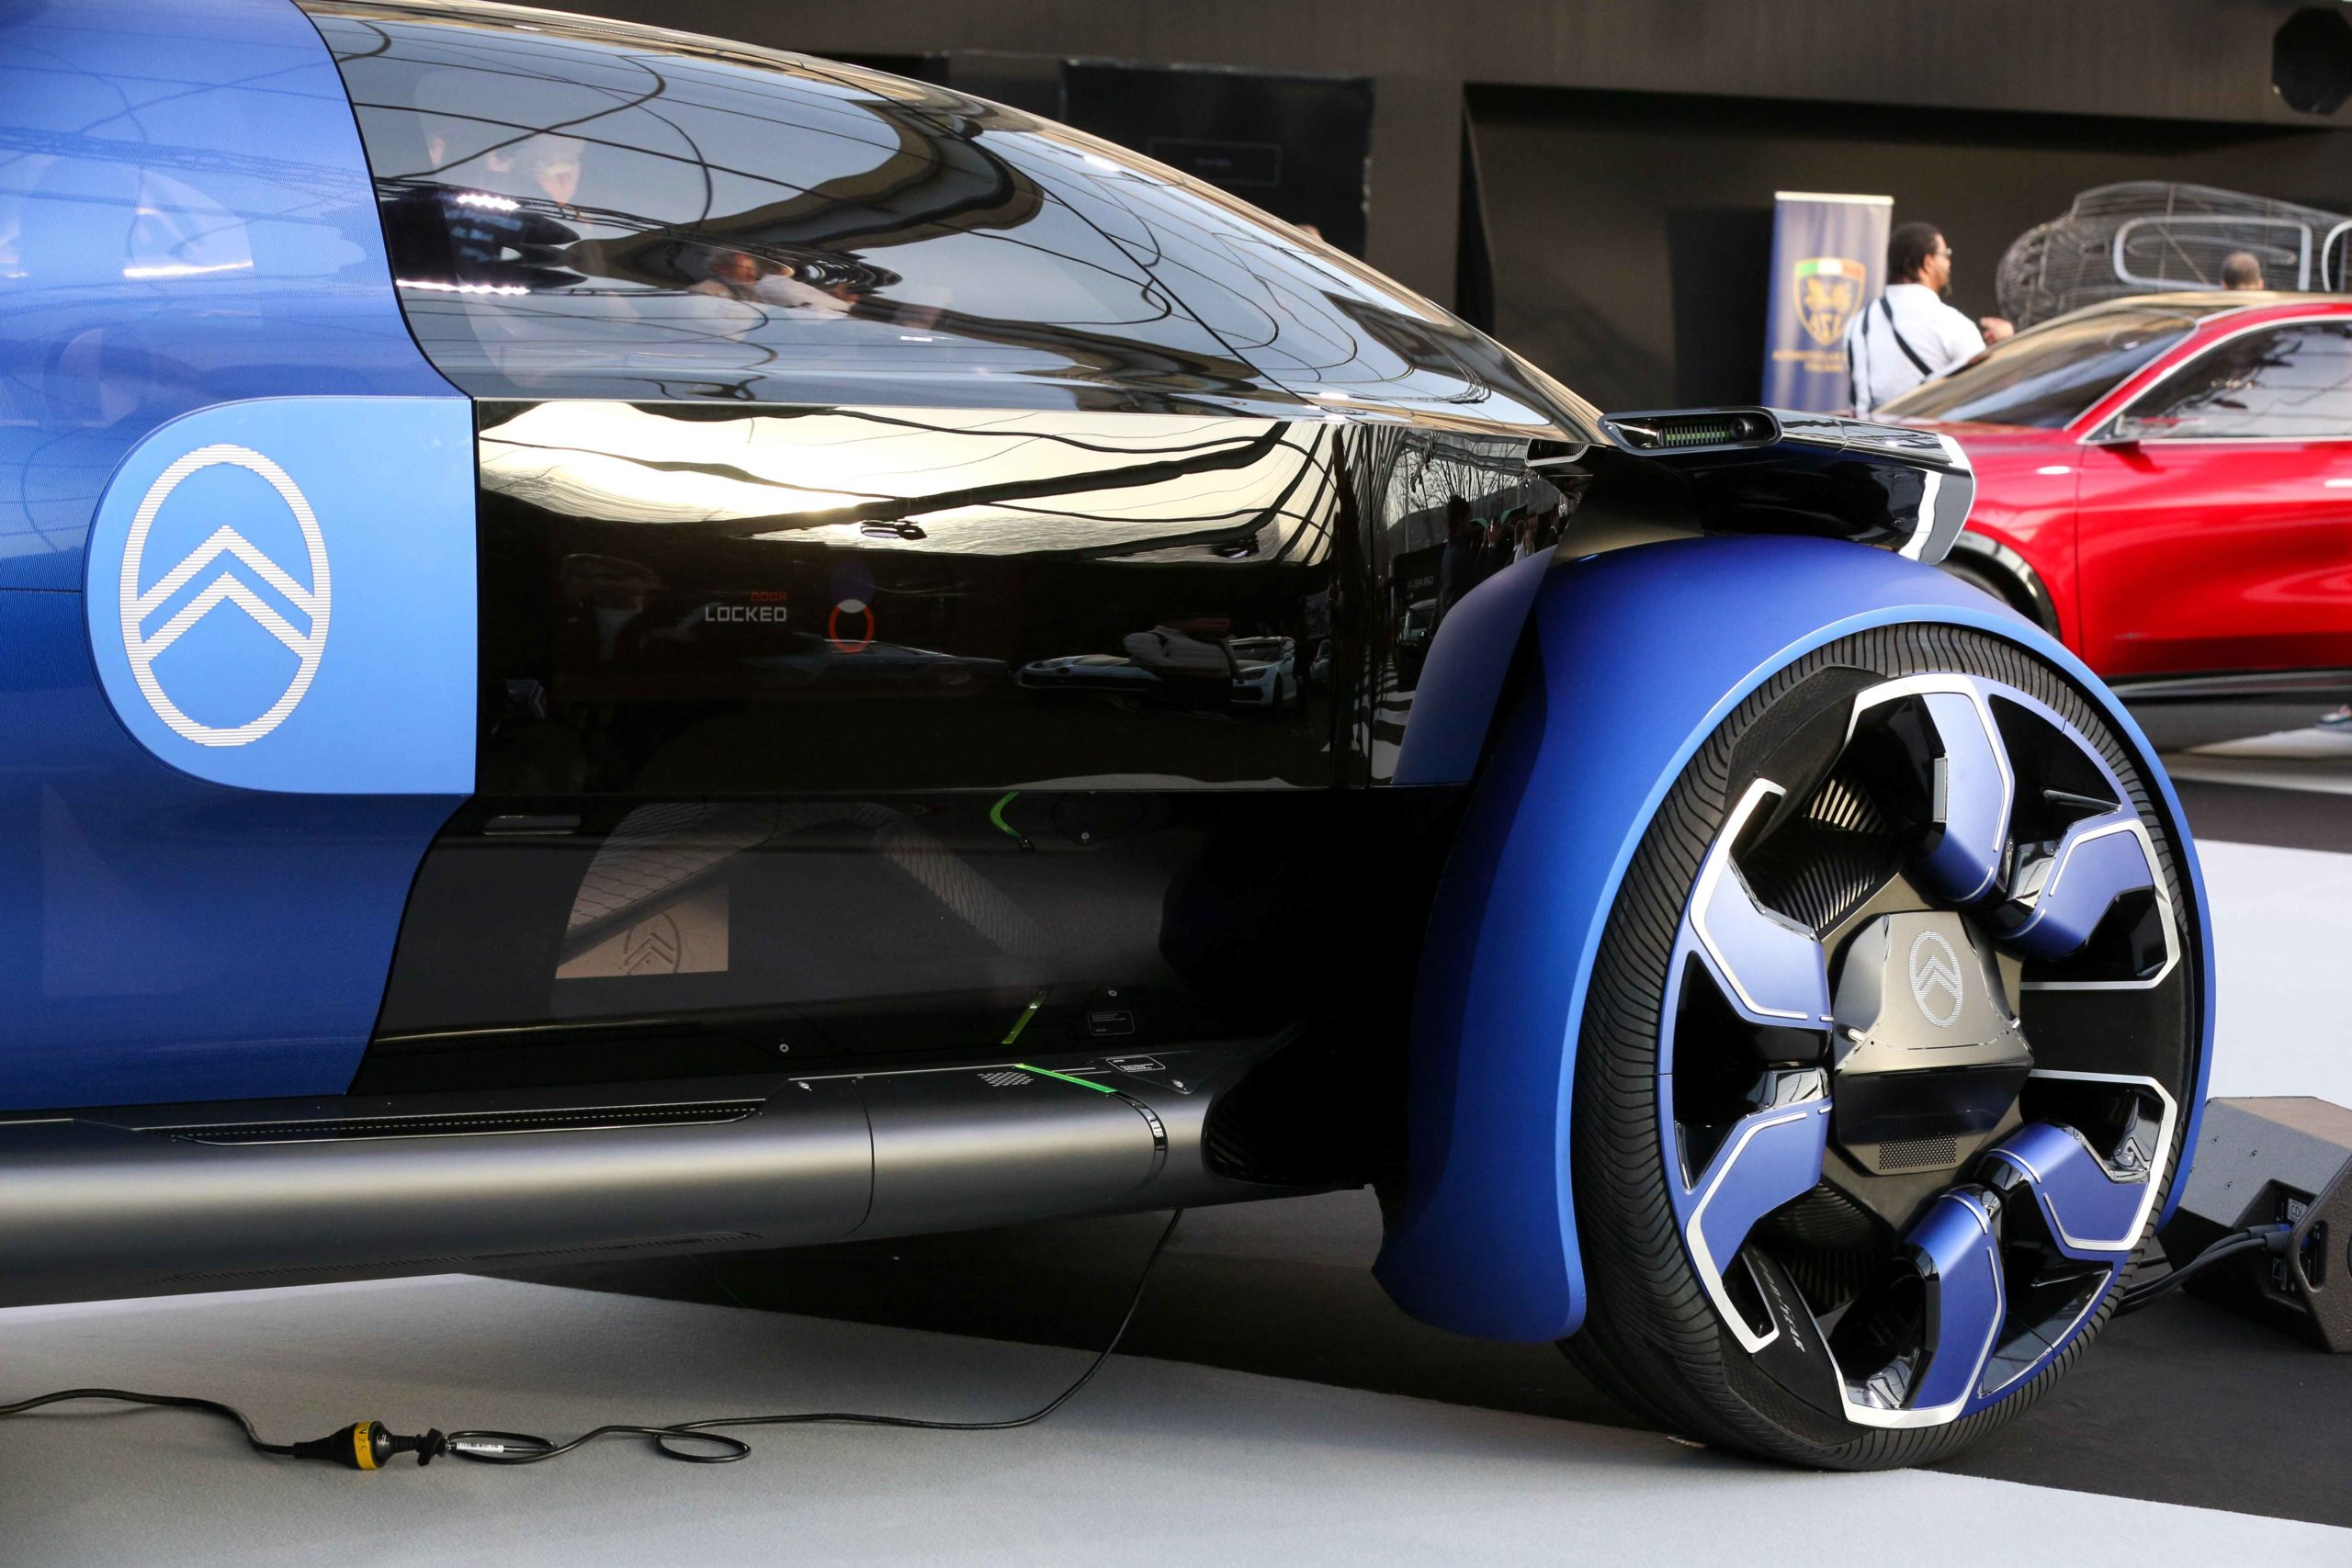 A Citroën 19 concept-car is displayed during the press day of the 2020 concept-cars exhibition and automobile design in Paris on January 20, 2020. The latest concept-cars and supercars are displayed during this exhibition where the greatest designers of t